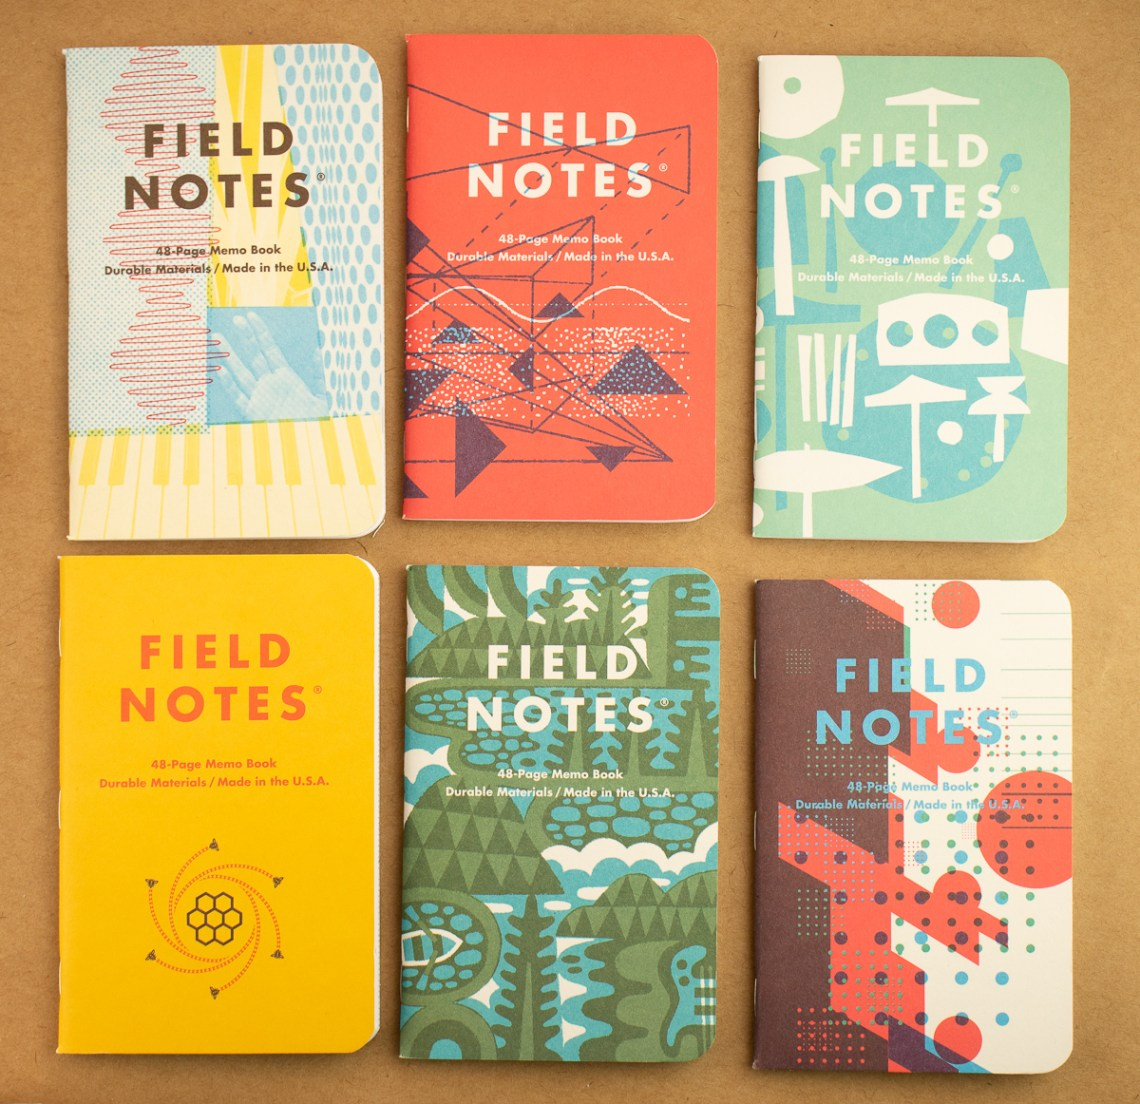 Wilco x Field Notes